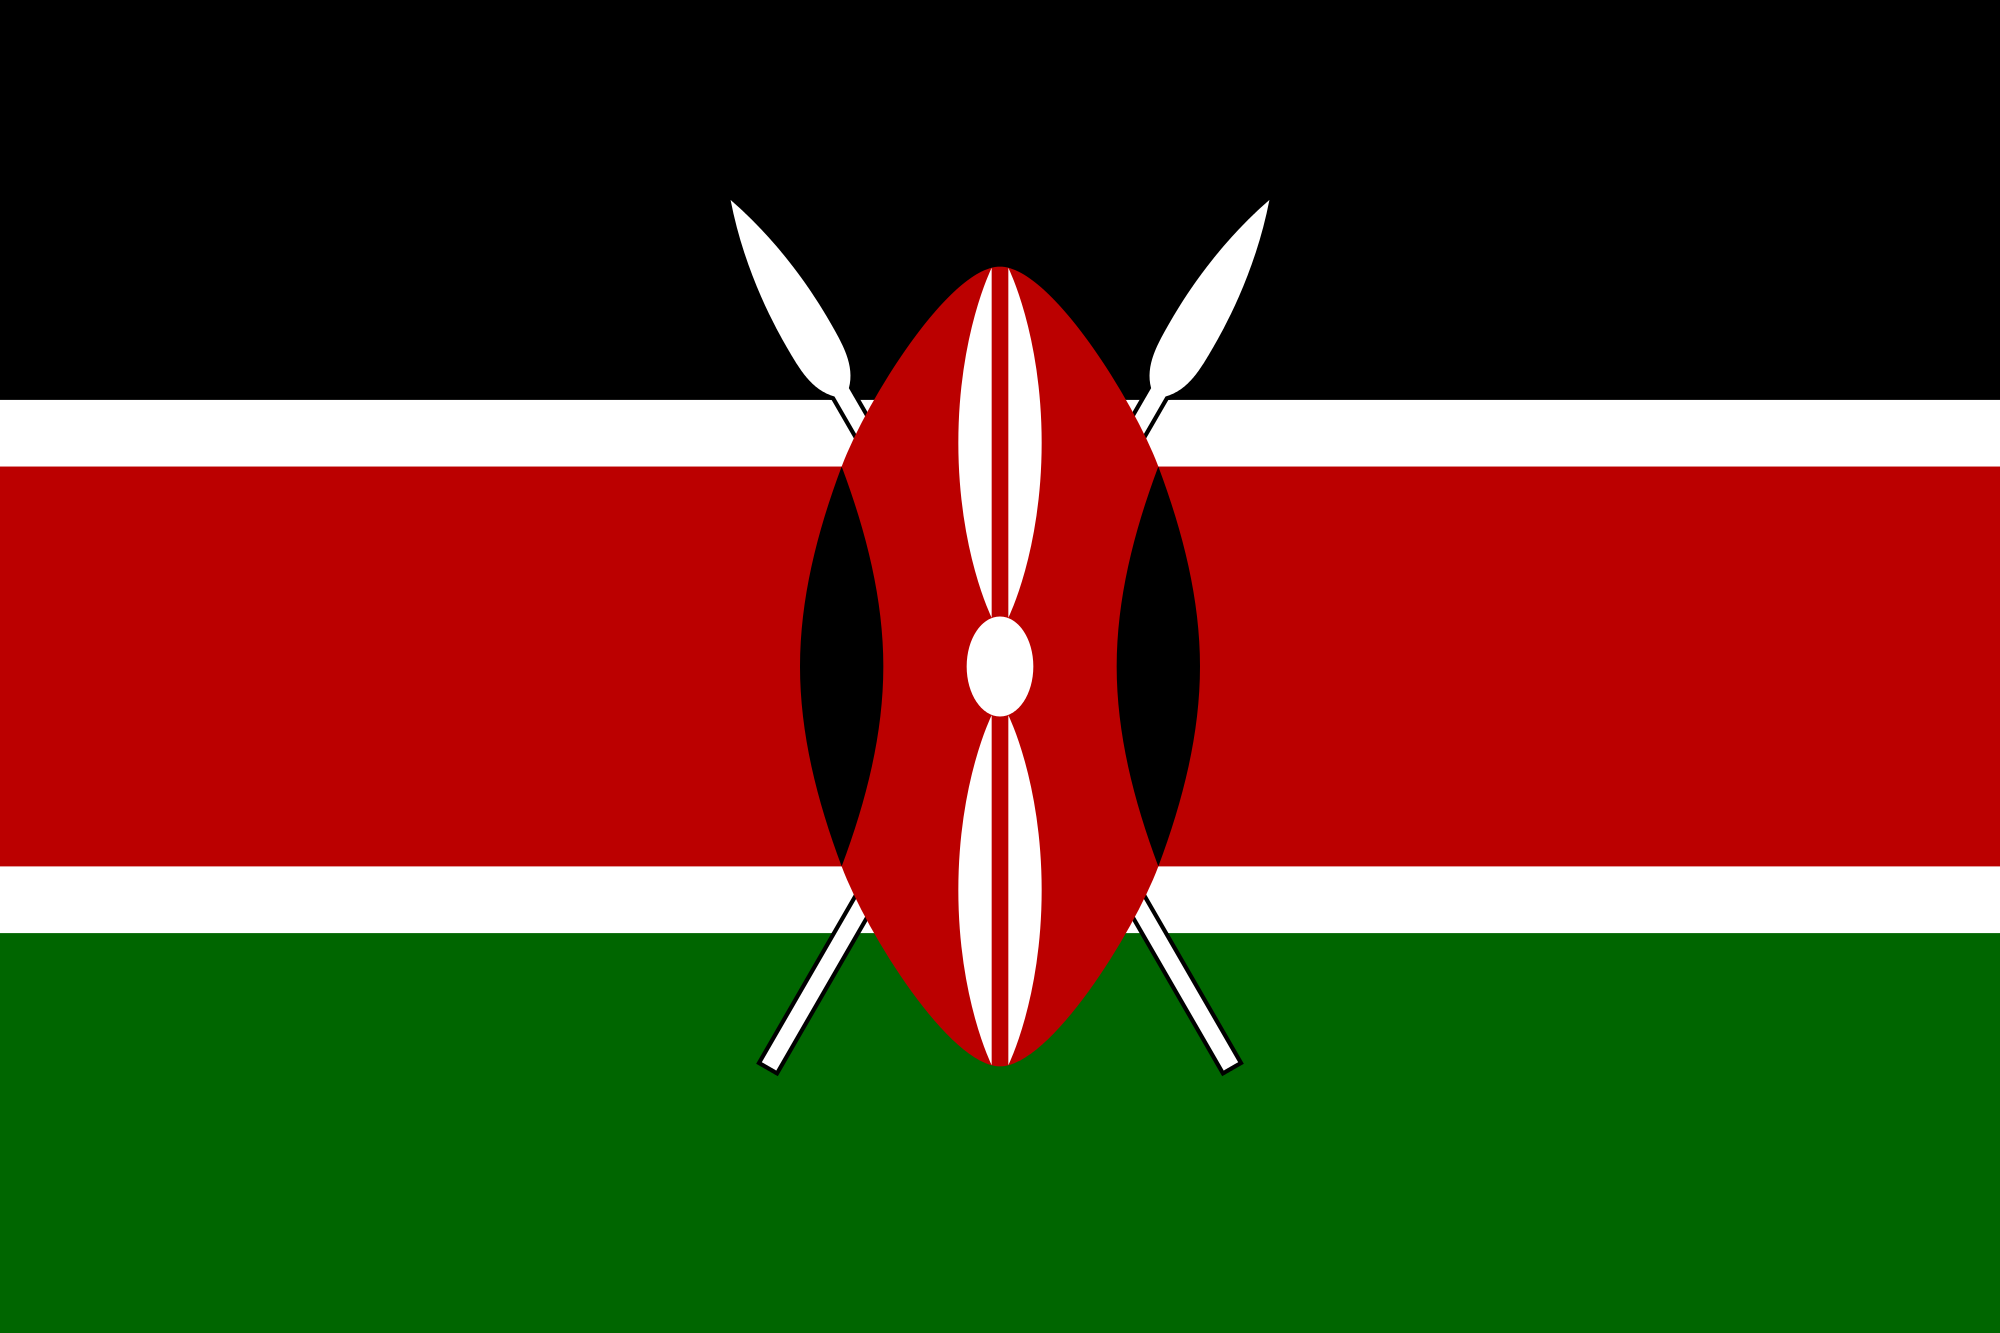 Kenya Flag and Description